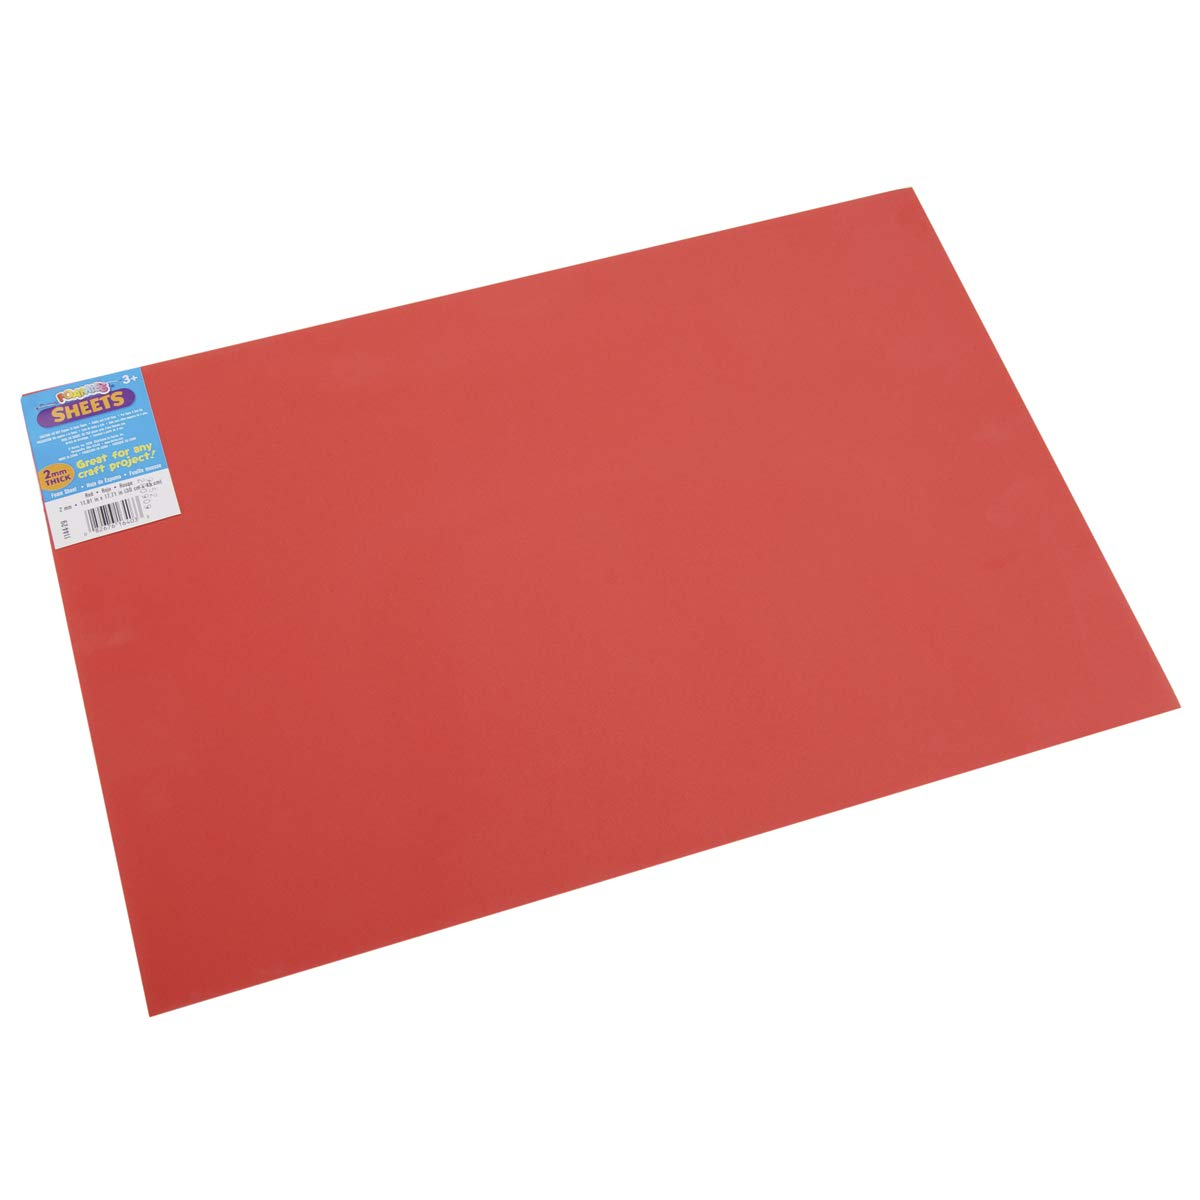 Darice Foamies Foam Sheet Red 2mm Thick 12 X 18 Inches (12 Pack)